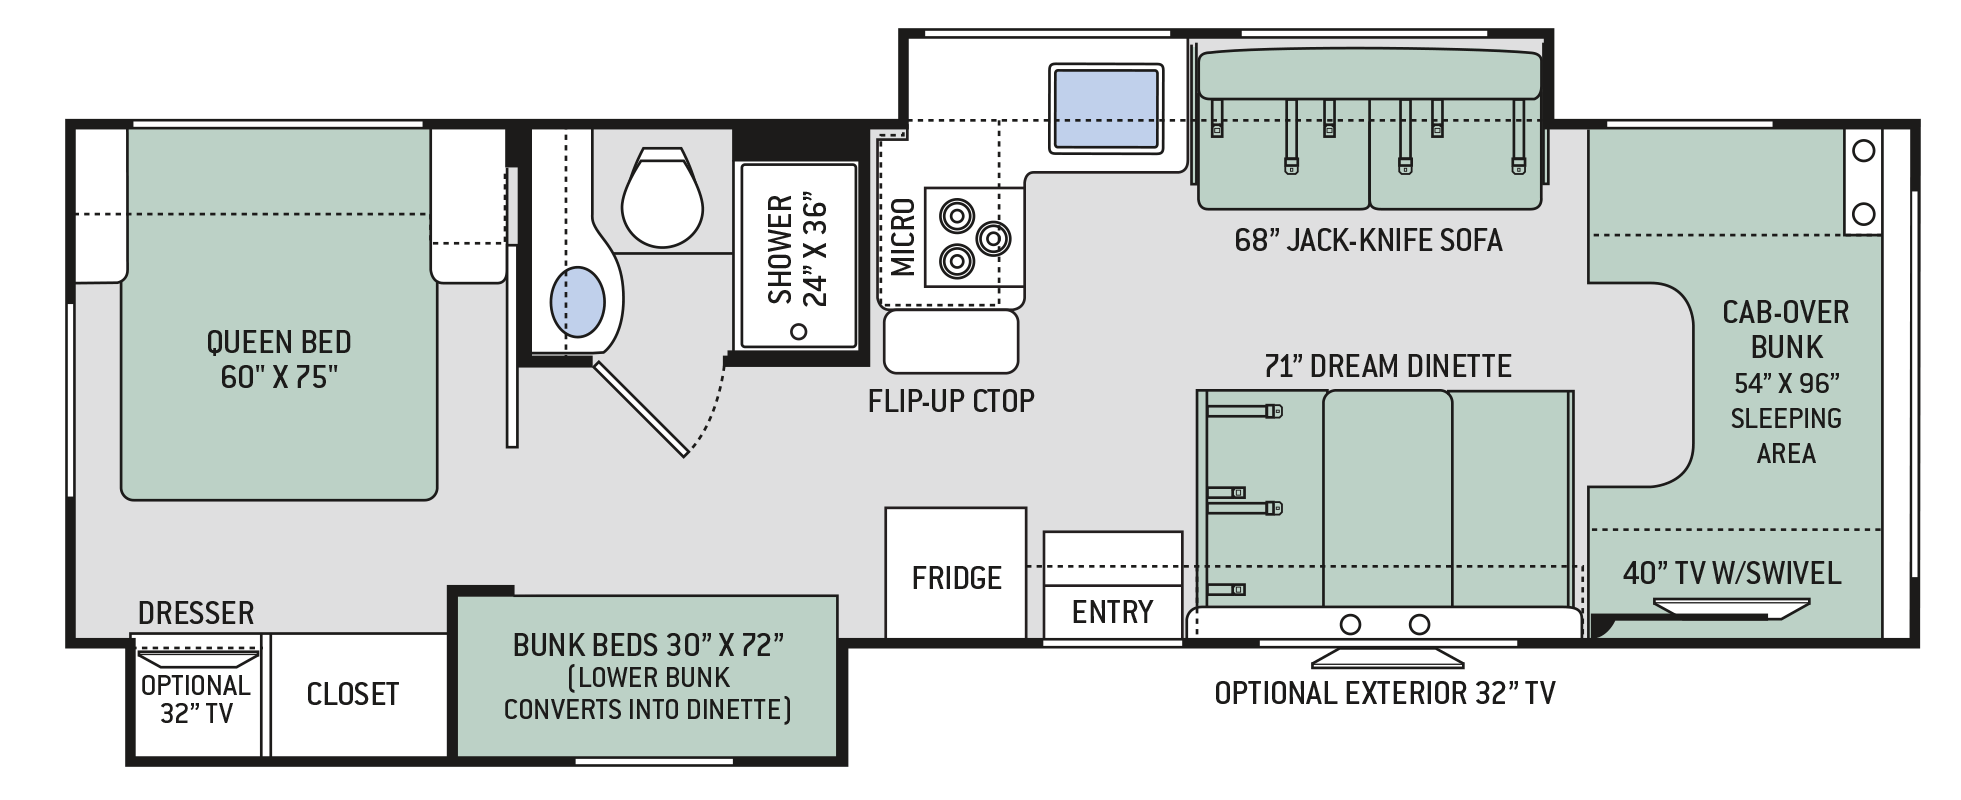 Chateau Class C Motorhomes Floor Plan 30d Thor Motor